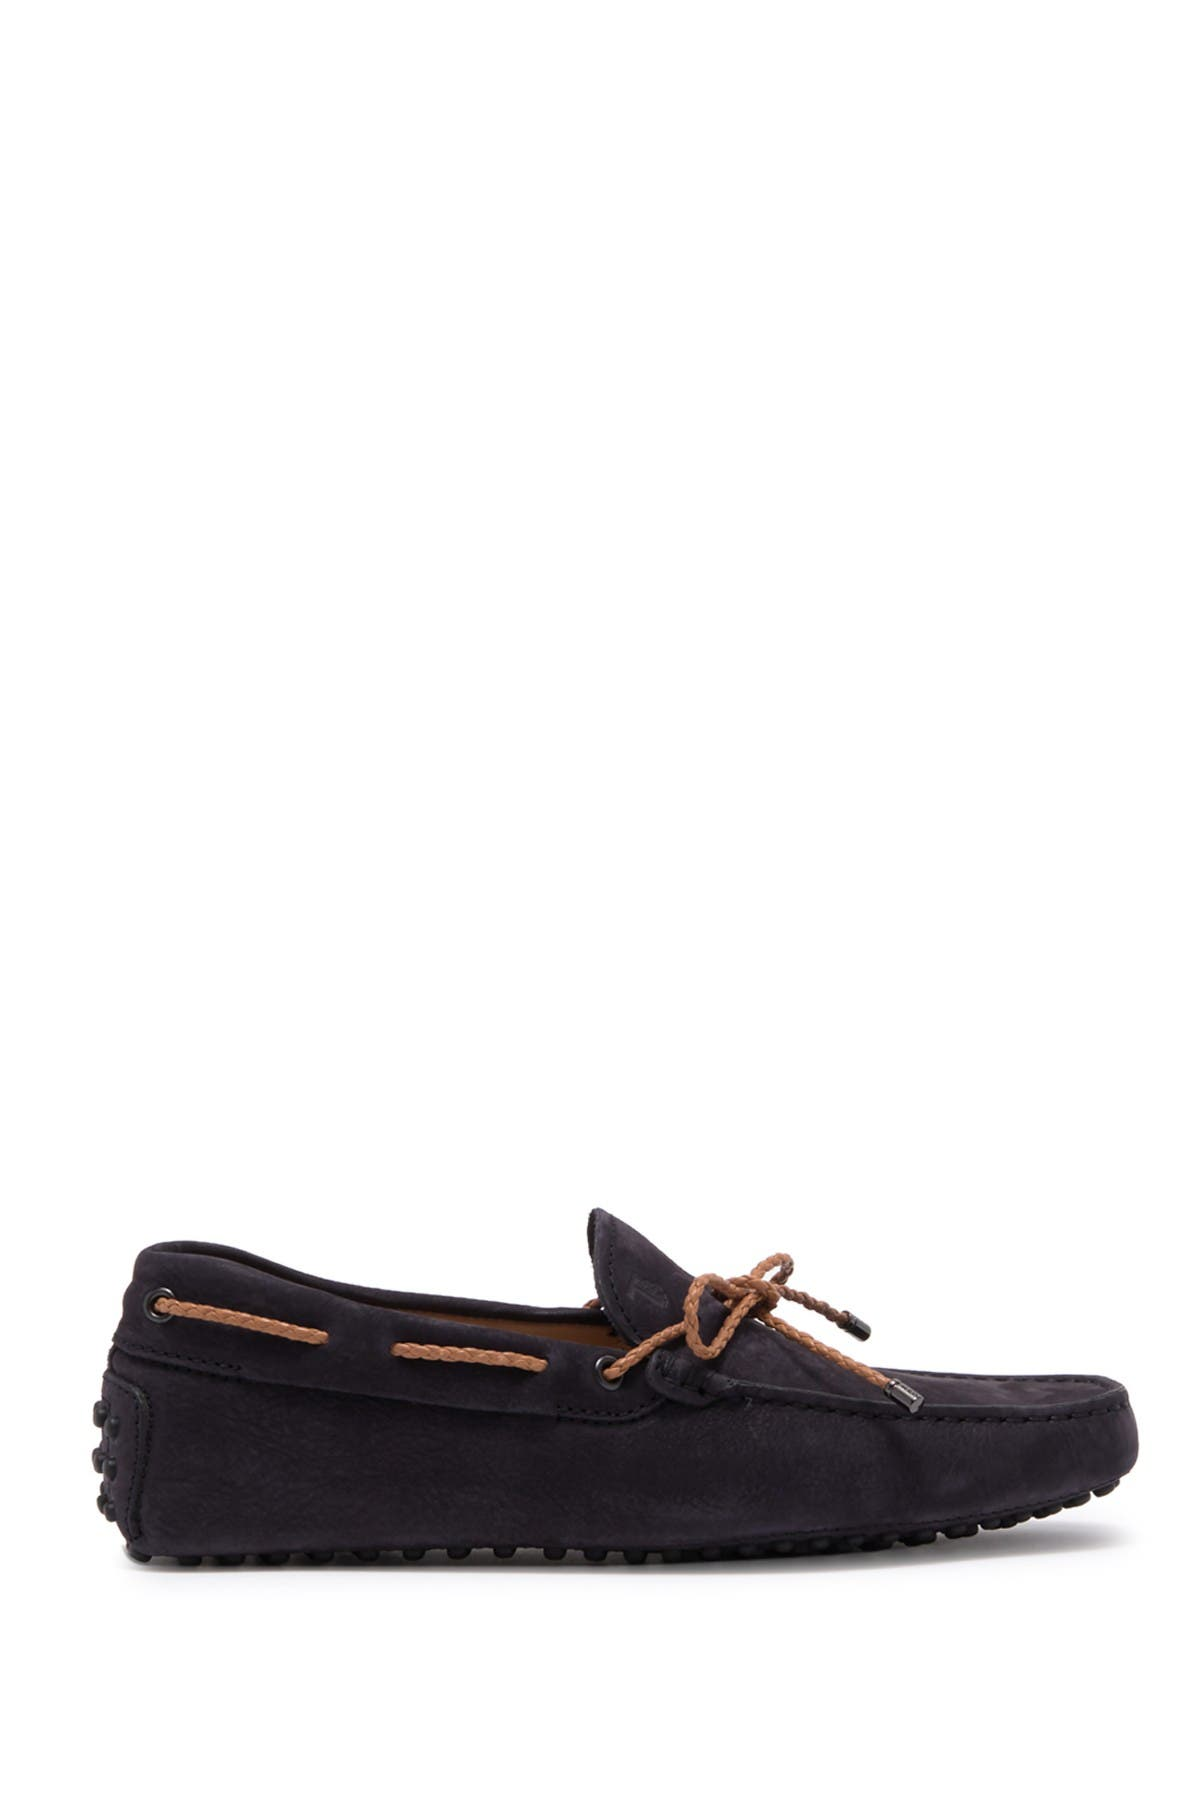 Image of Tod's Laccetto Leather Driving Loafer